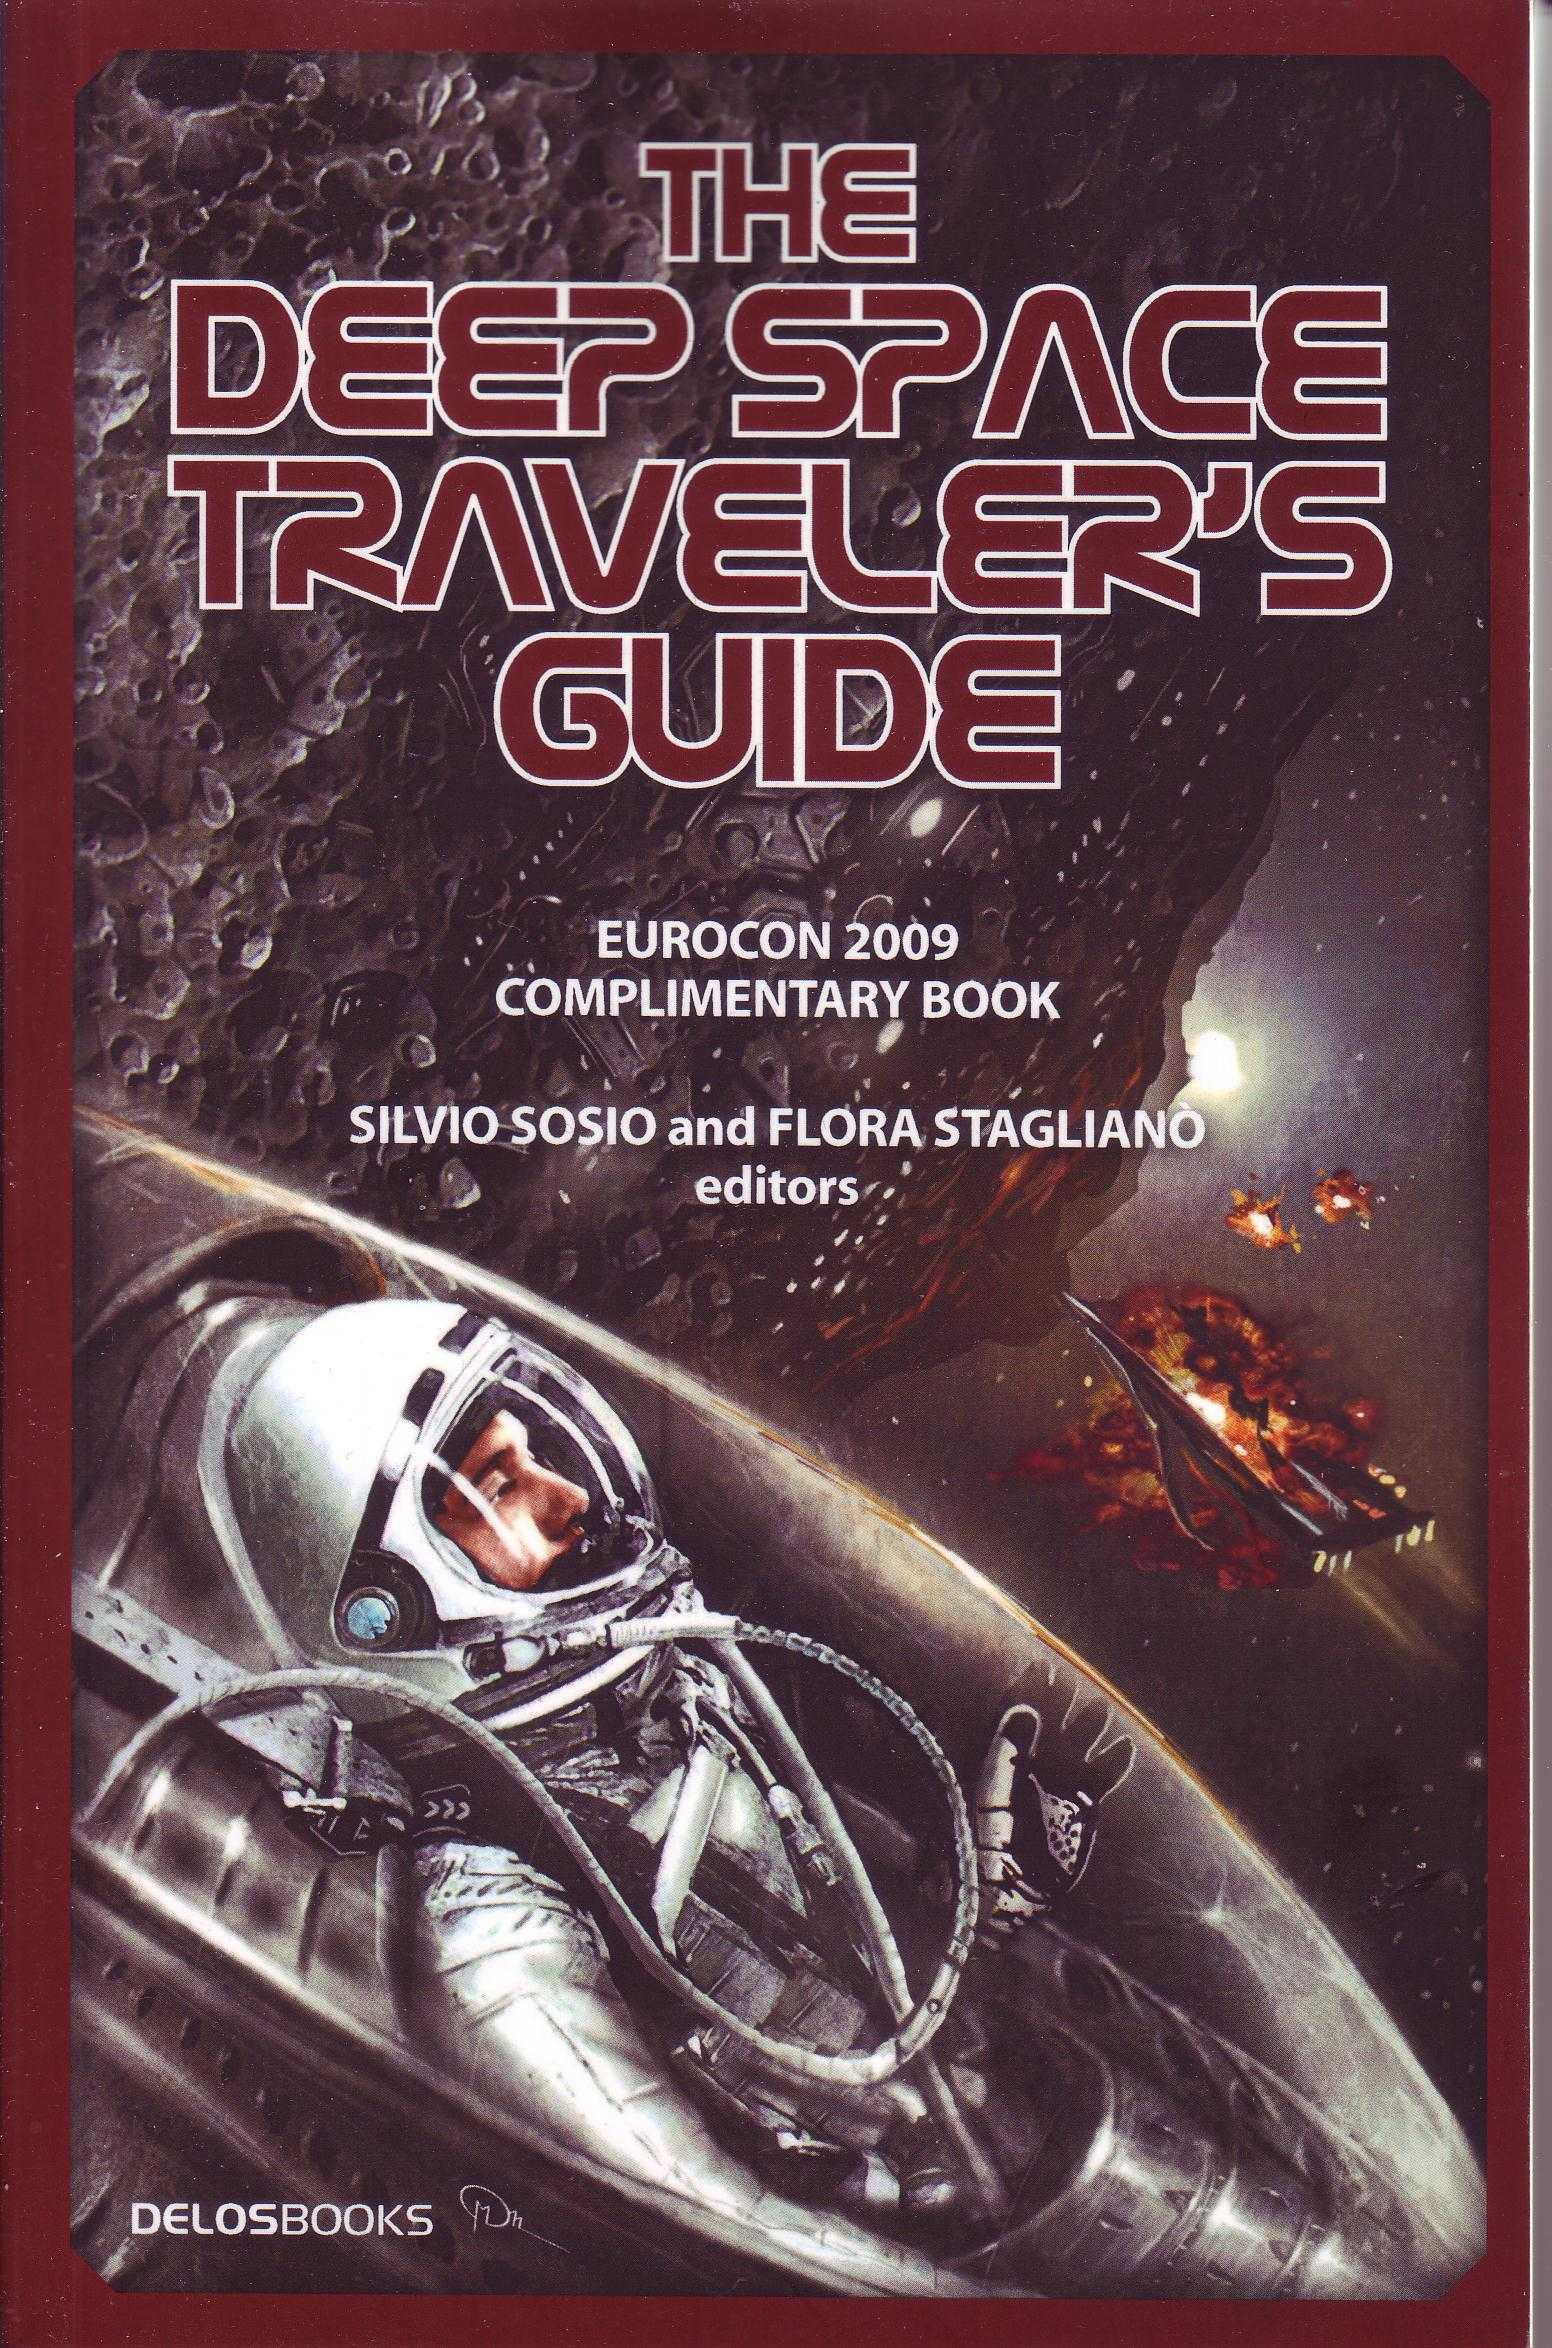 The Deep Space Traveler's Guide